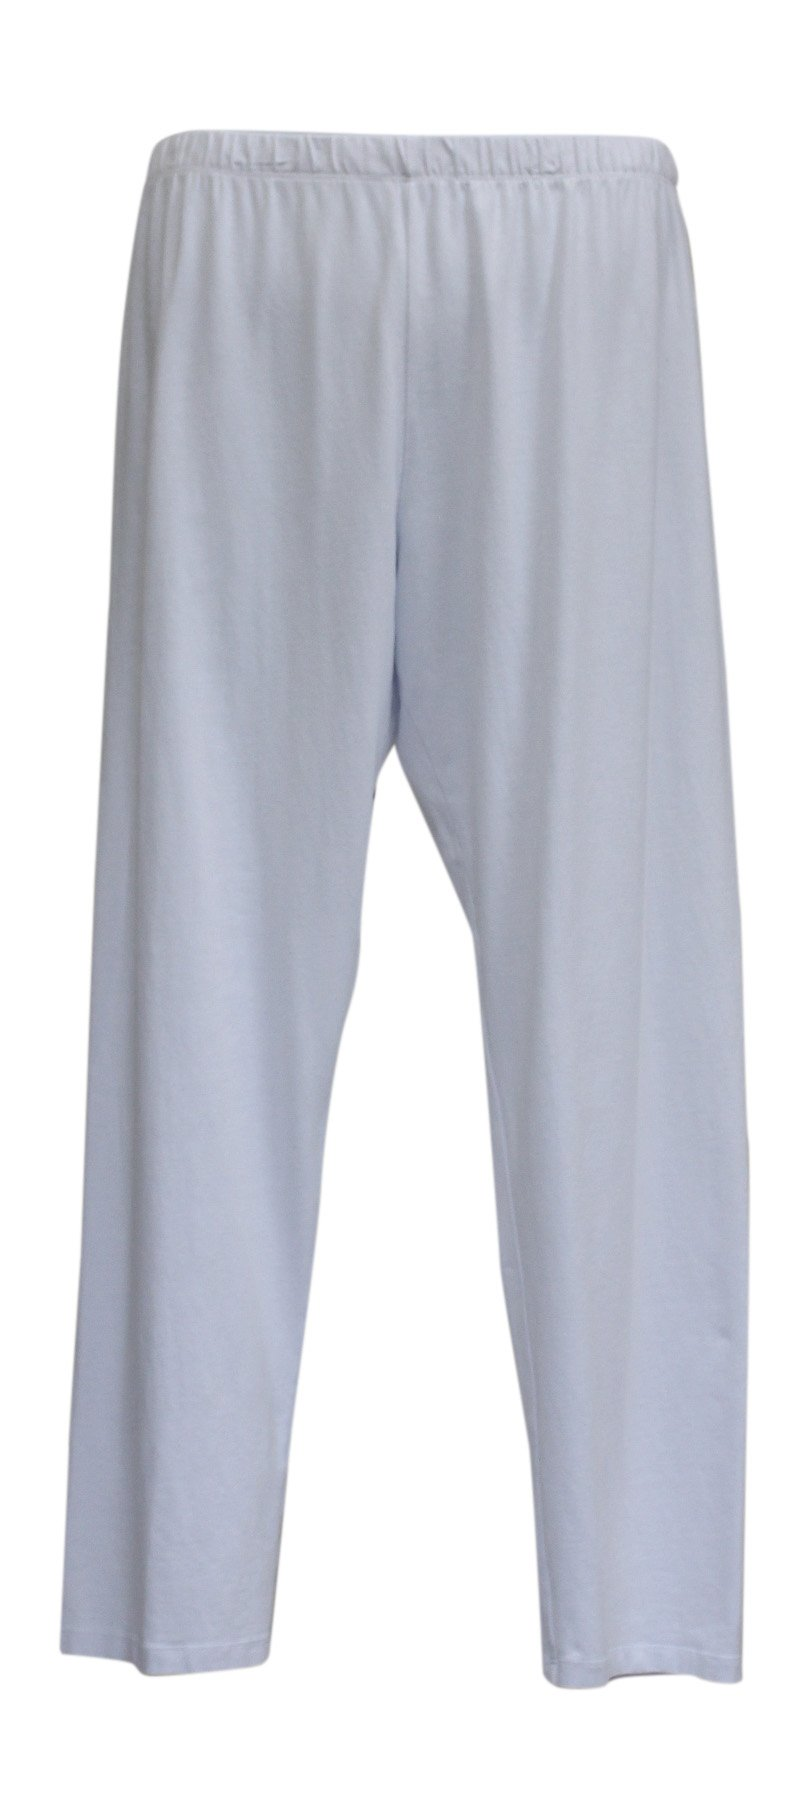 Jess & Jane Women's Mineral Washed Cotton Legging Pants (1X, White)